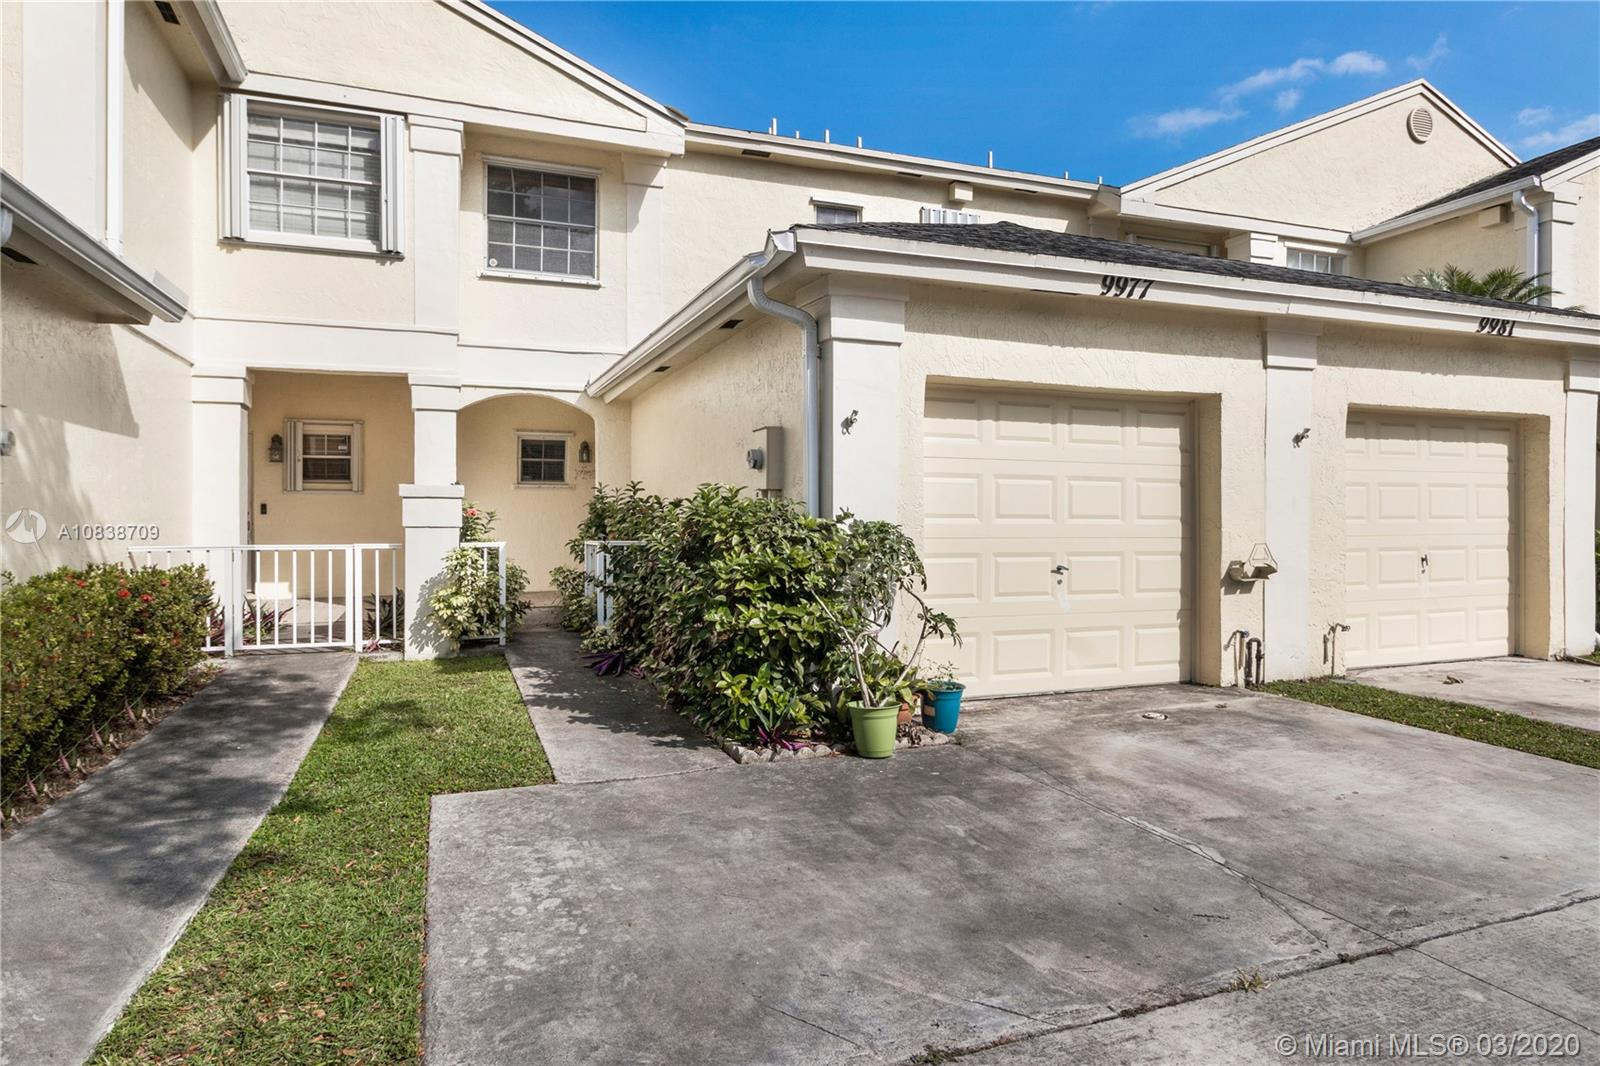 9977 SW 118th Ct # 9977, Miami, Florida 33186, 2 Bedrooms Bedrooms, ,3 BathroomsBathrooms,Residential,For Sale,9977 SW 118th Ct # 9977,A10838709